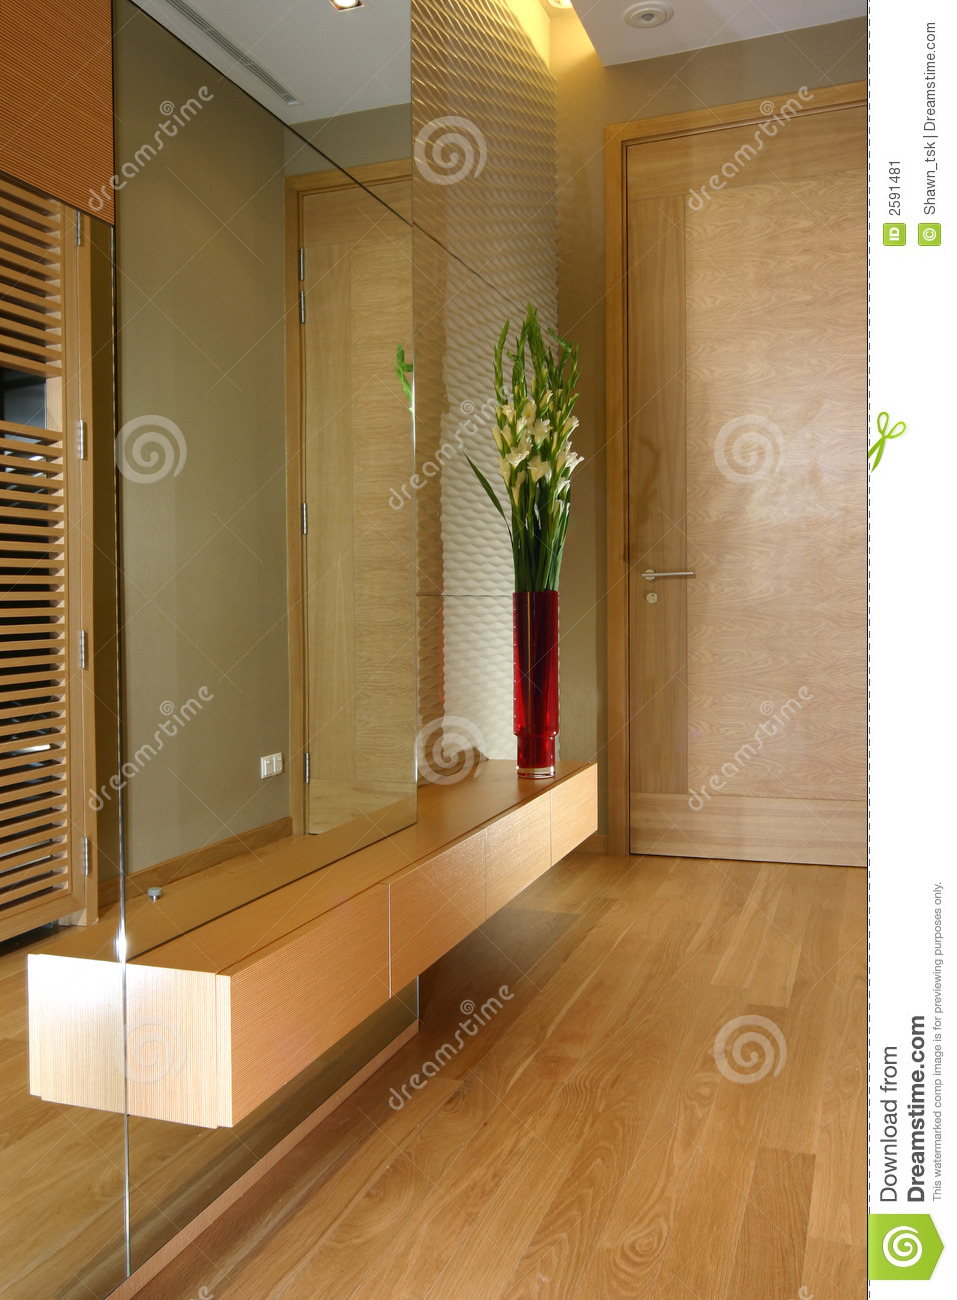 Interior design - foyer stock image. Image of vanity, wall ...